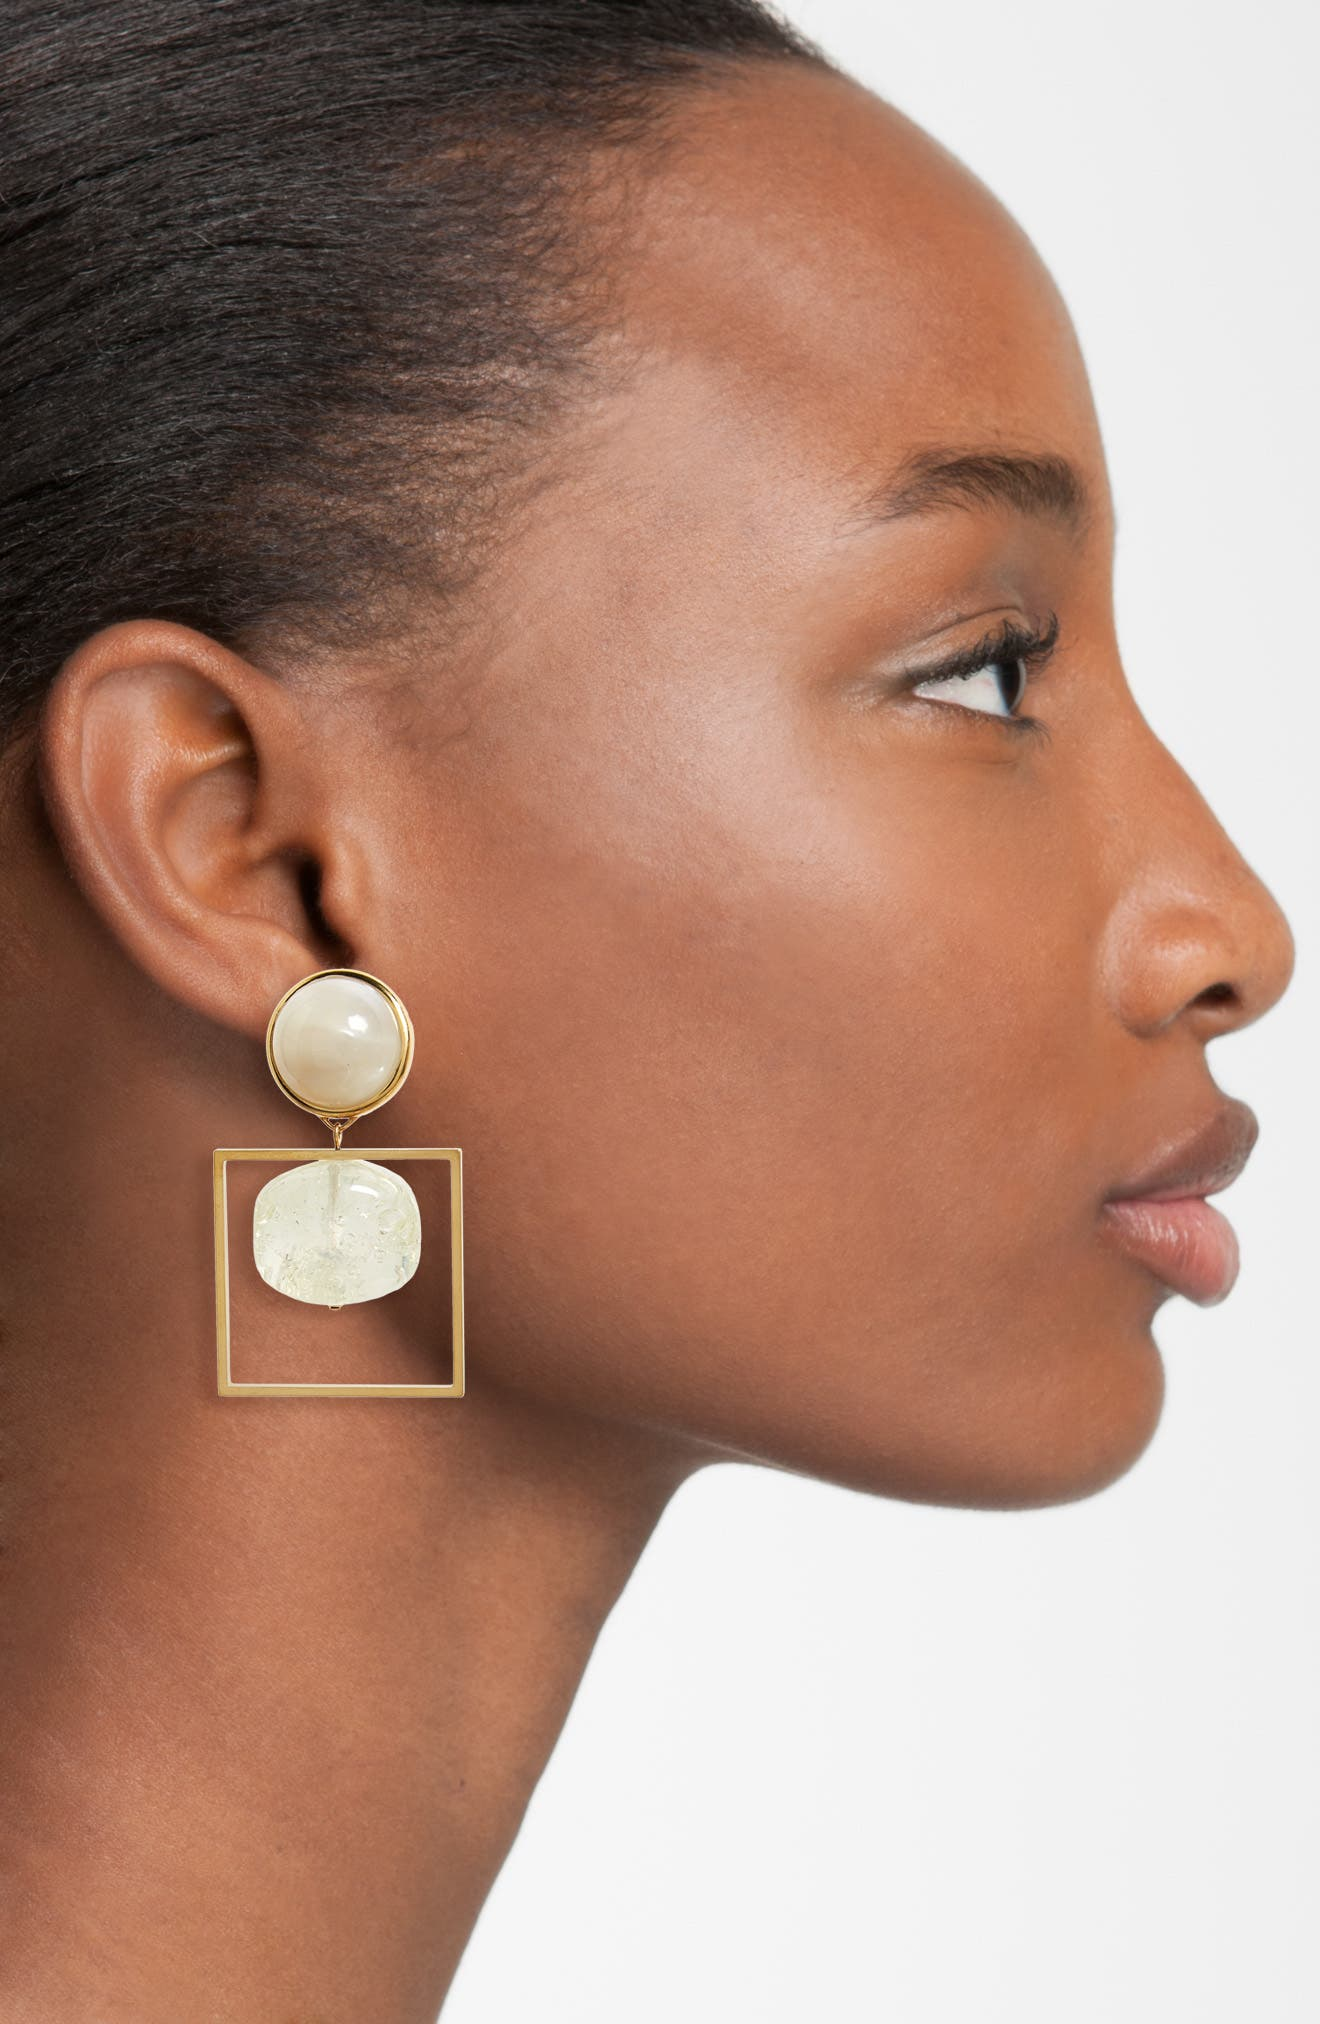 TORY BURCH, Geo Statement Drop Earrings, Alternate thumbnail 2, color, 710